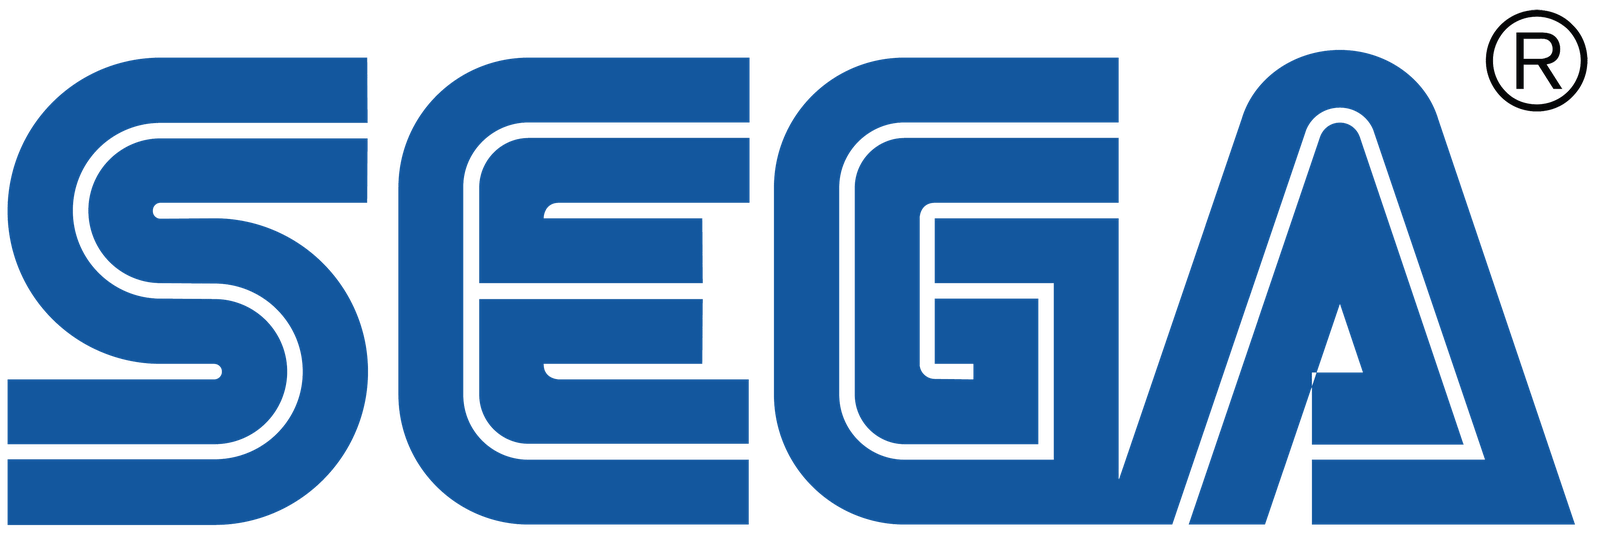 Rumour: Sega Going Digital Only?